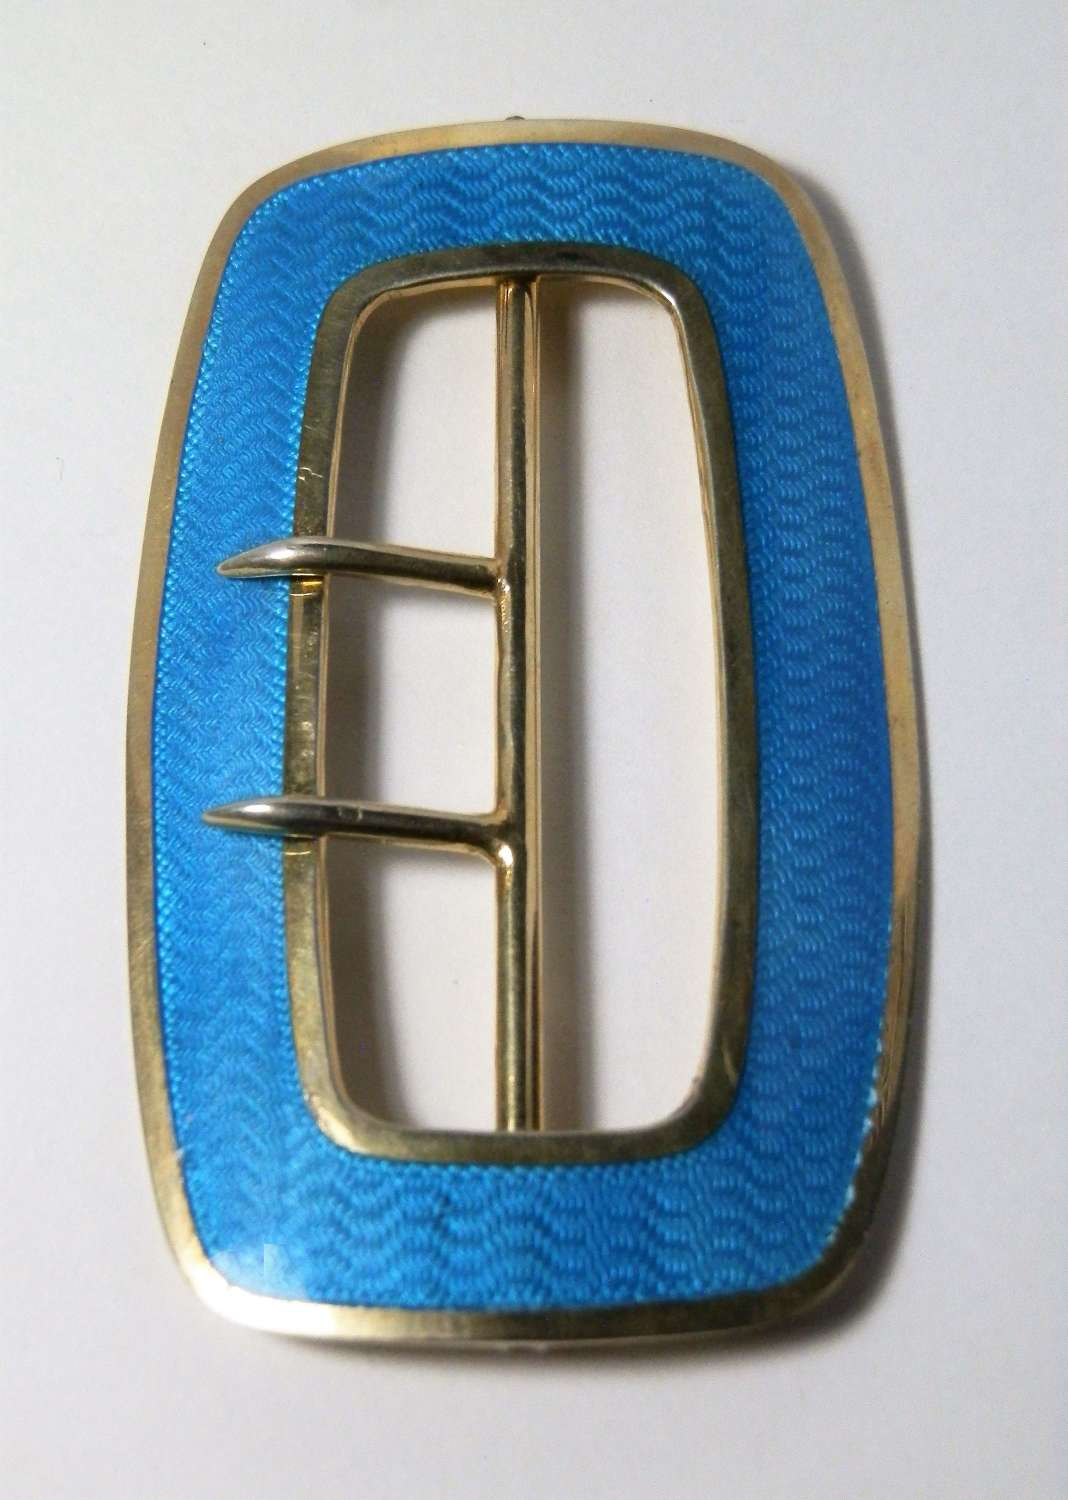 Edwardian silver gilt and enamel buckle, Birmingham 1909